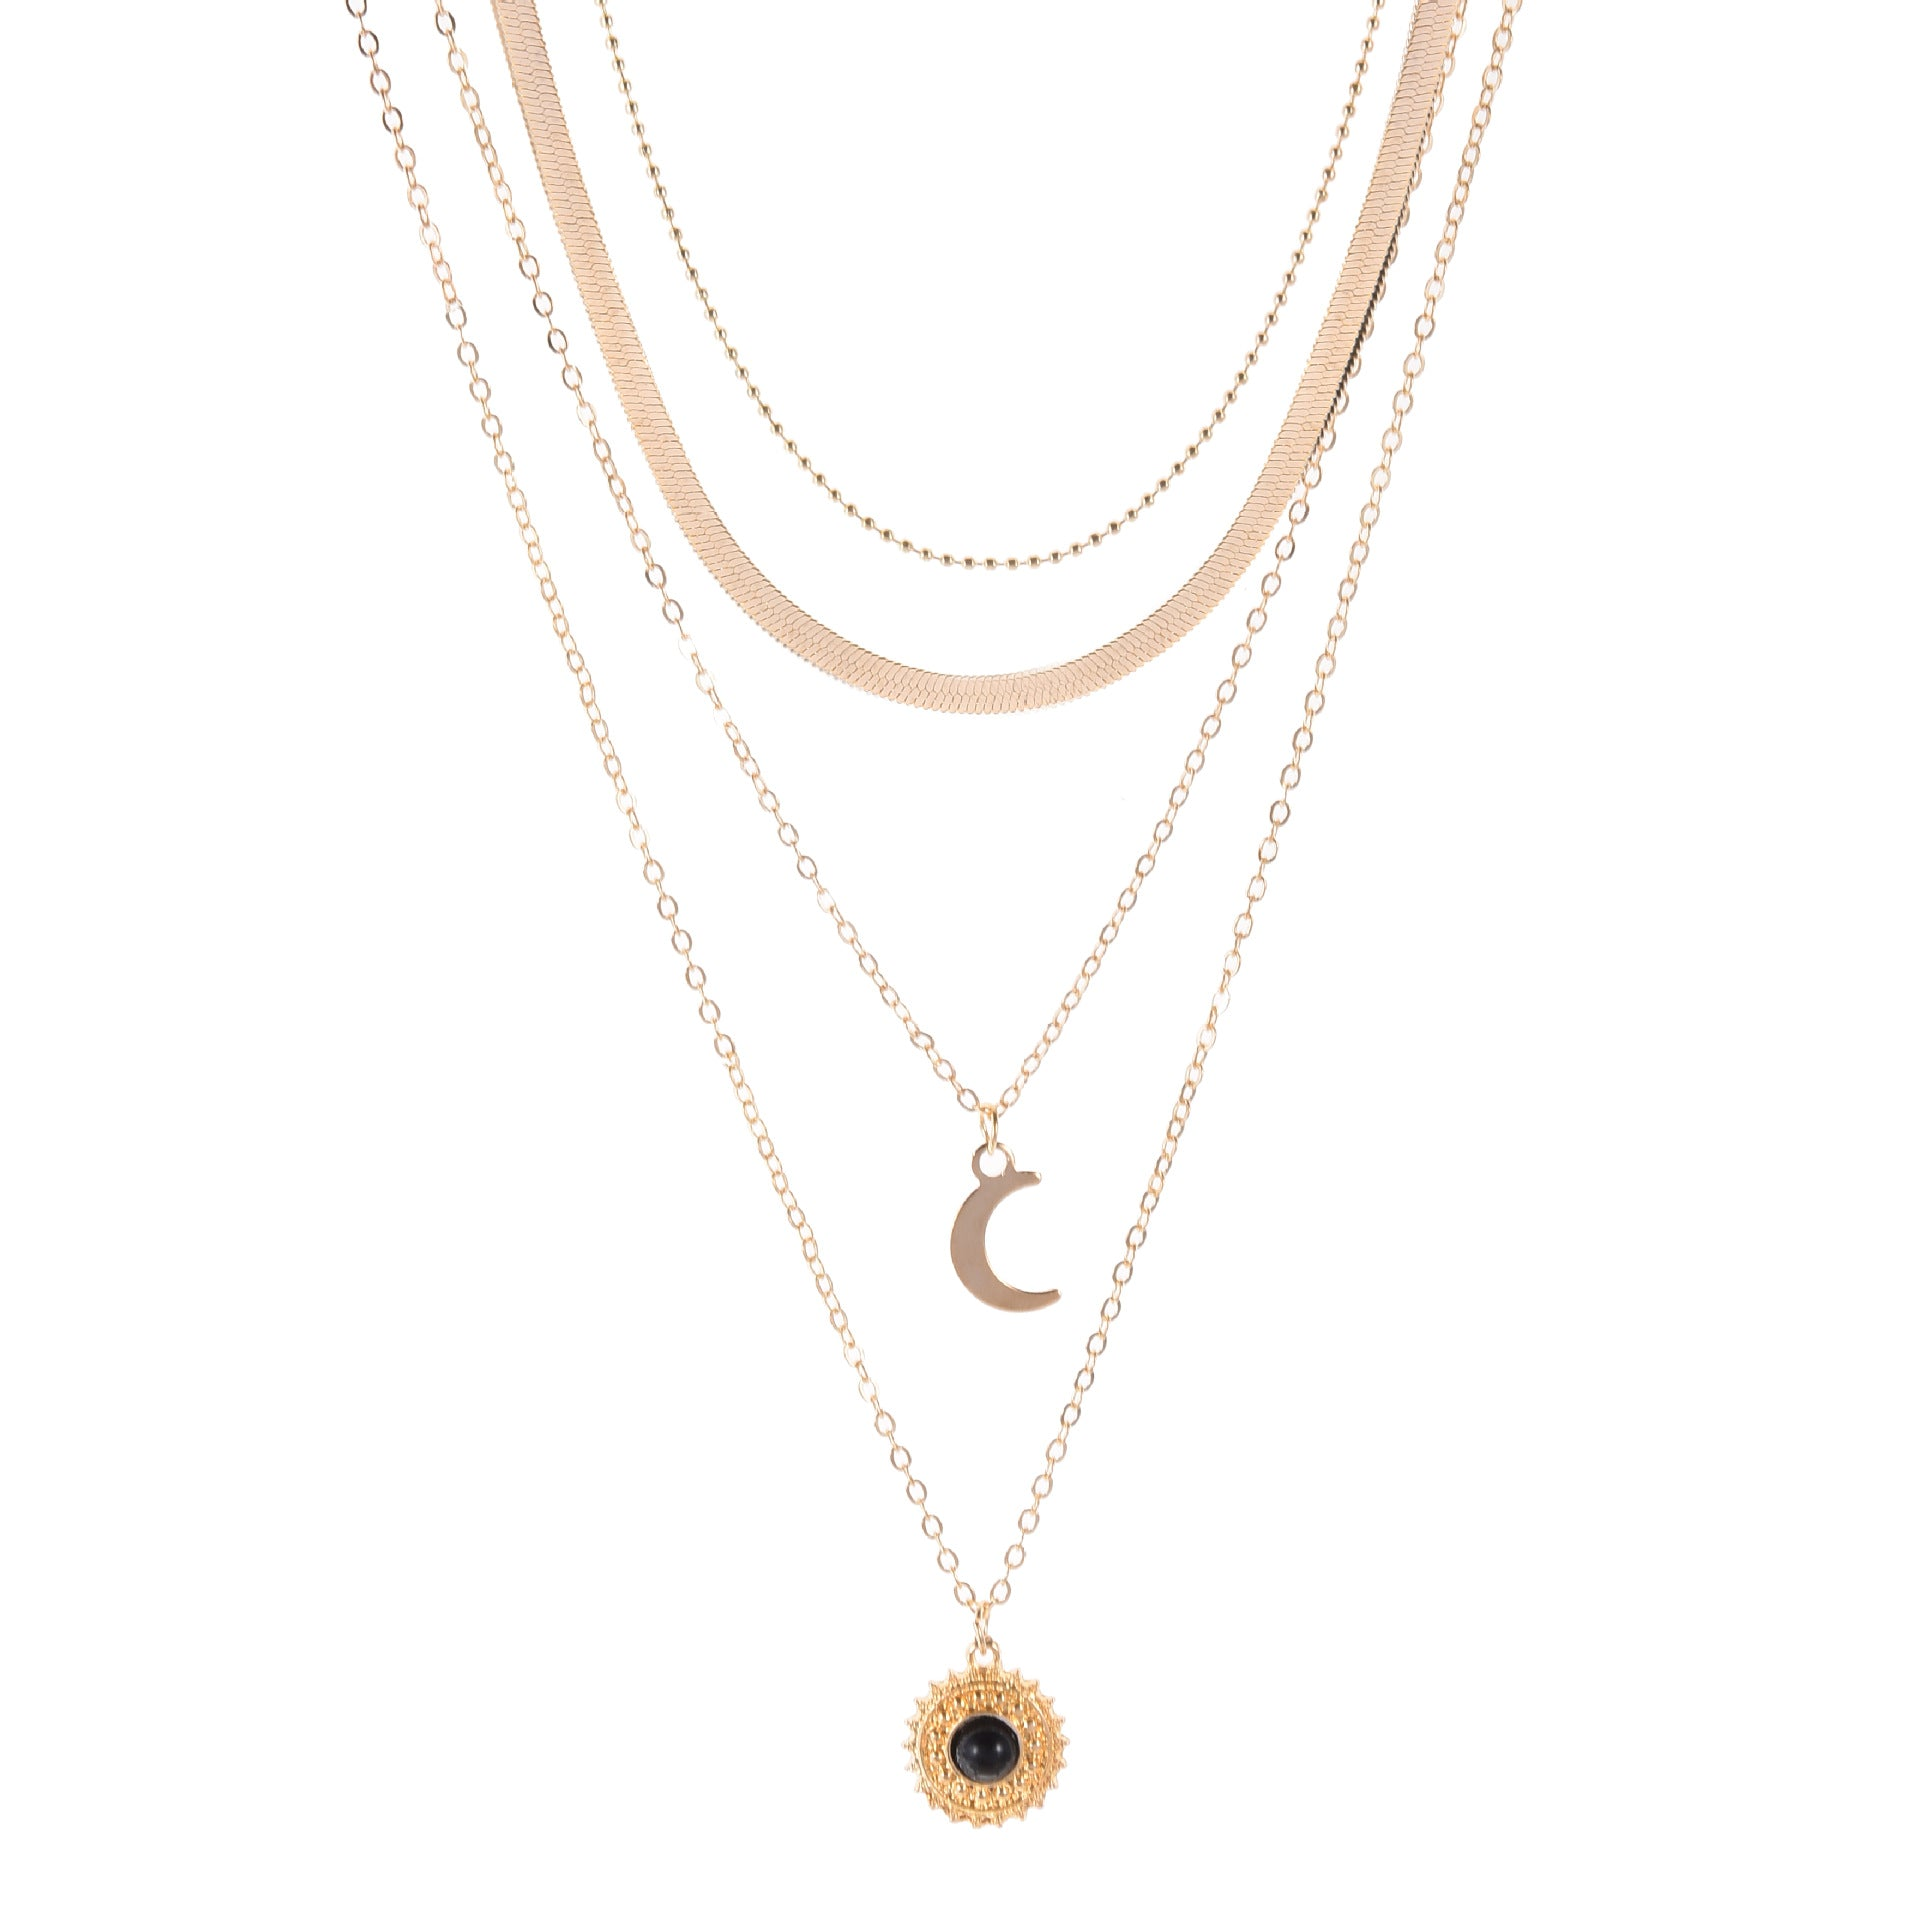 Tracy's Moon Layered Necklace